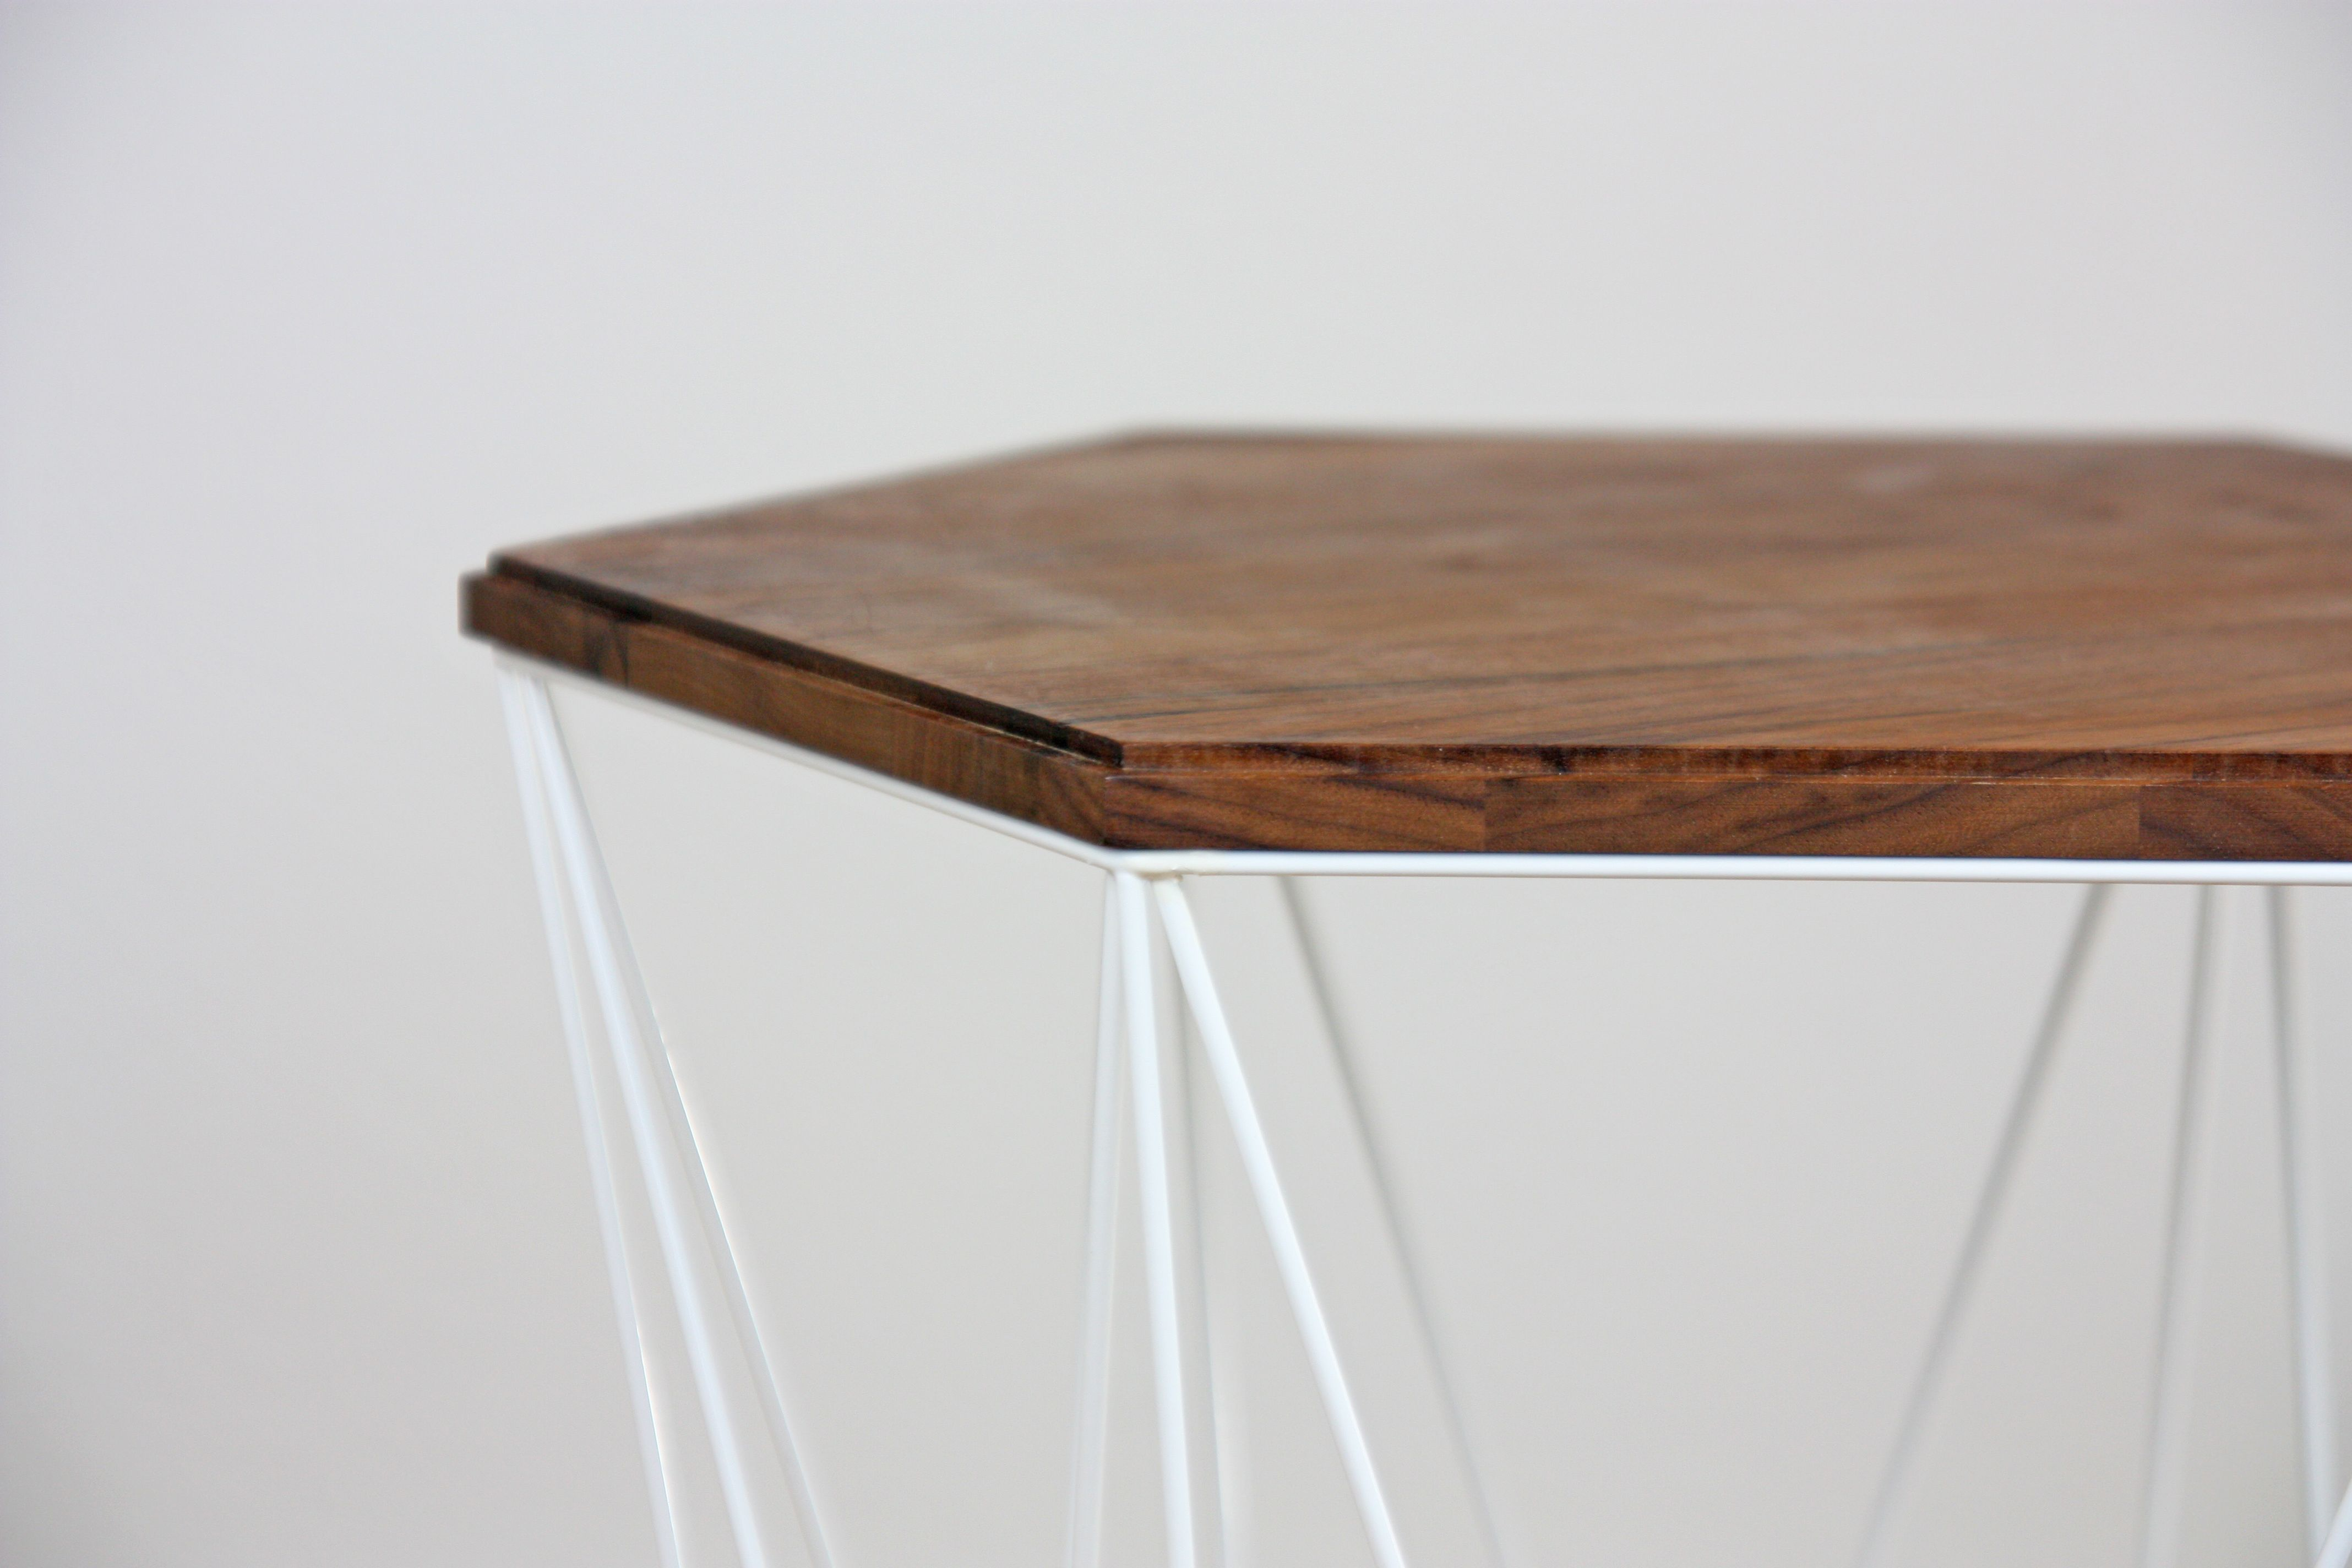 muse side table walnut detail of table top with all round groove